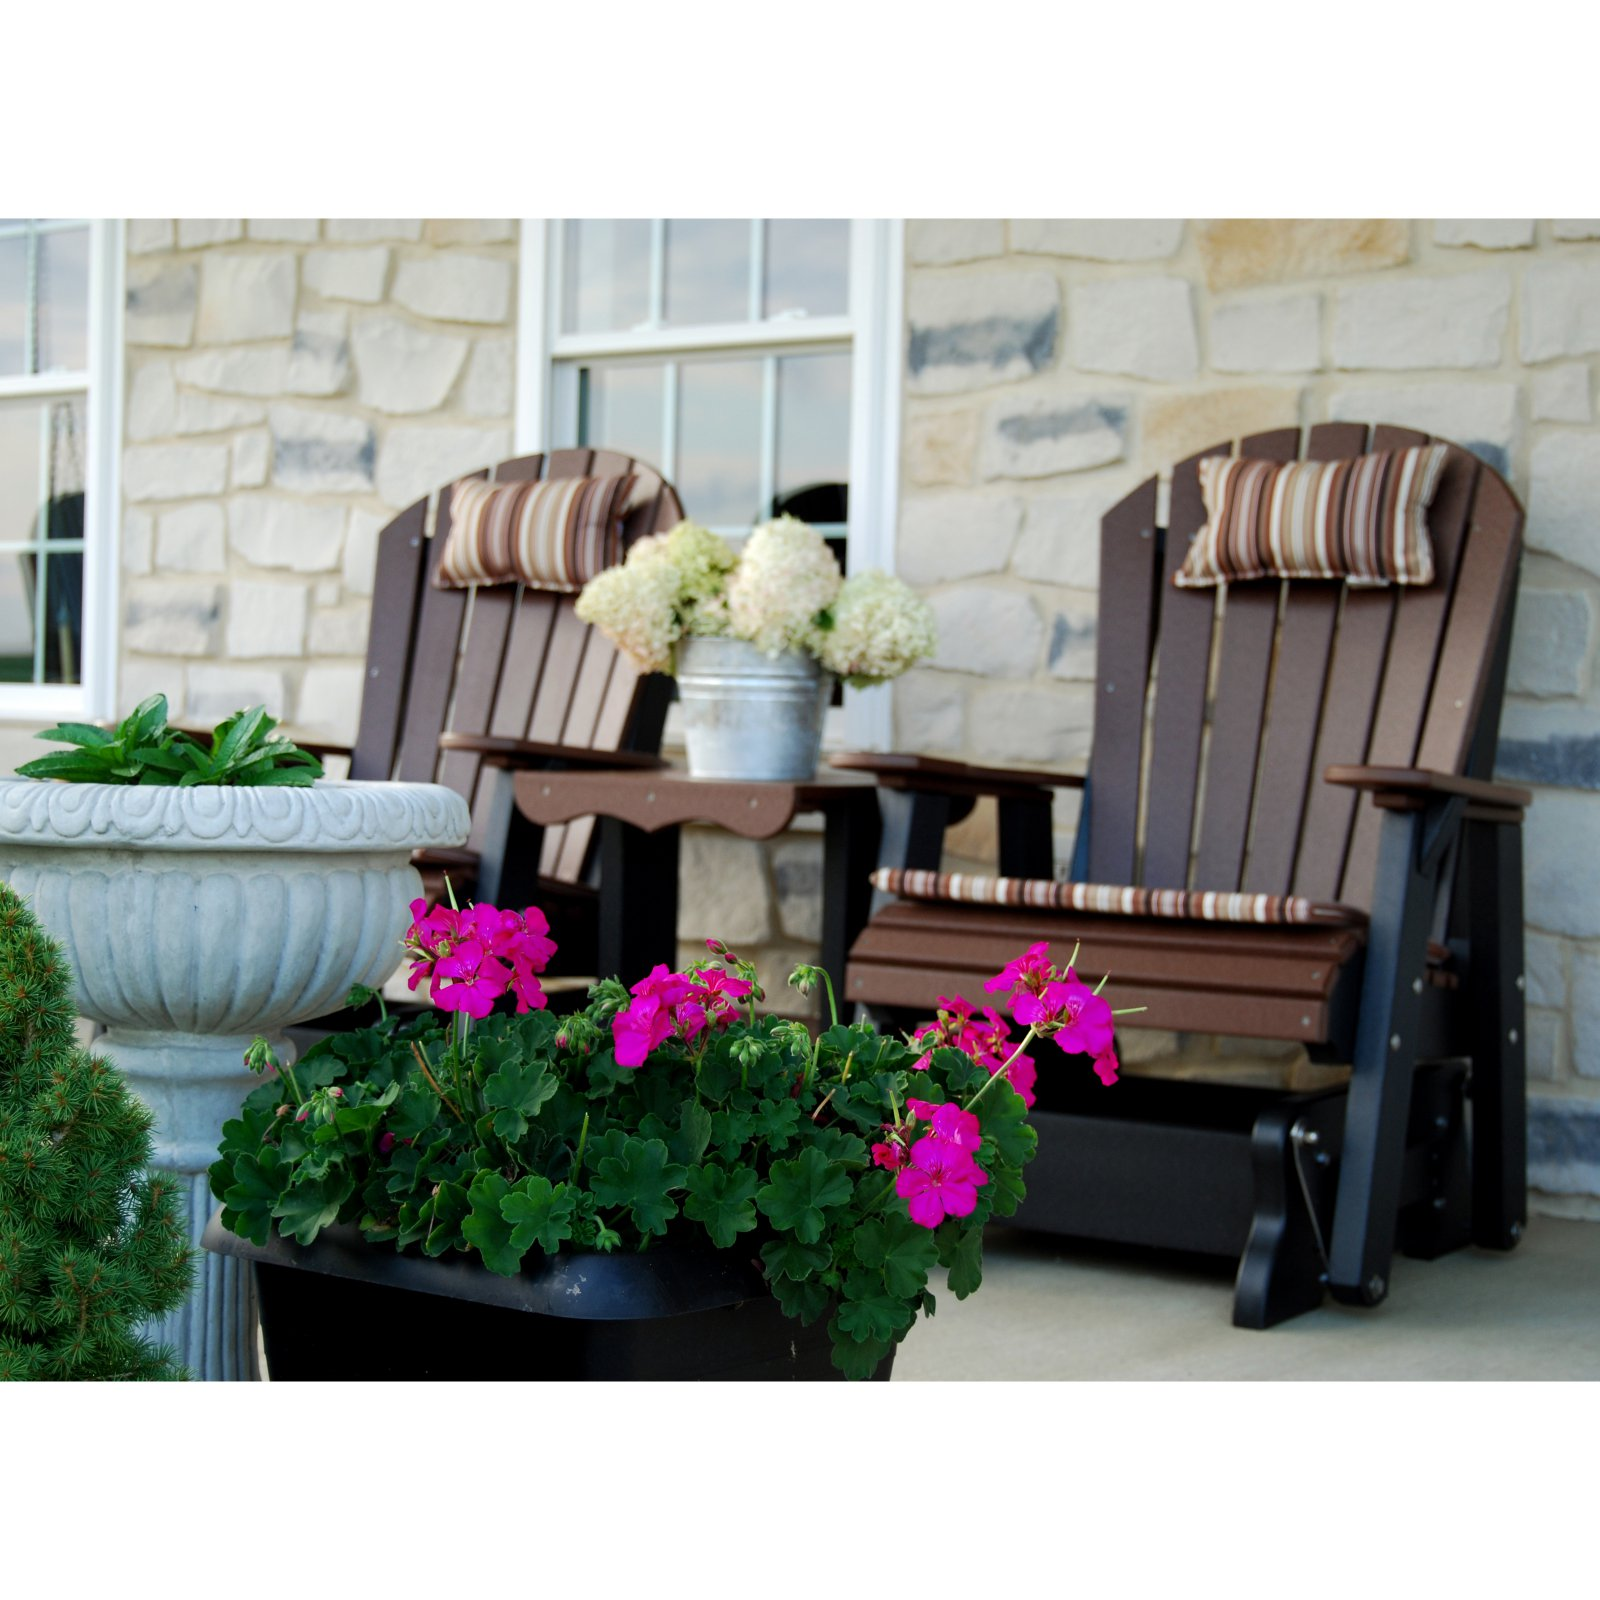 Wildridge Heritage Rock A Tee Double Seat Patio Glider   Walmart.com